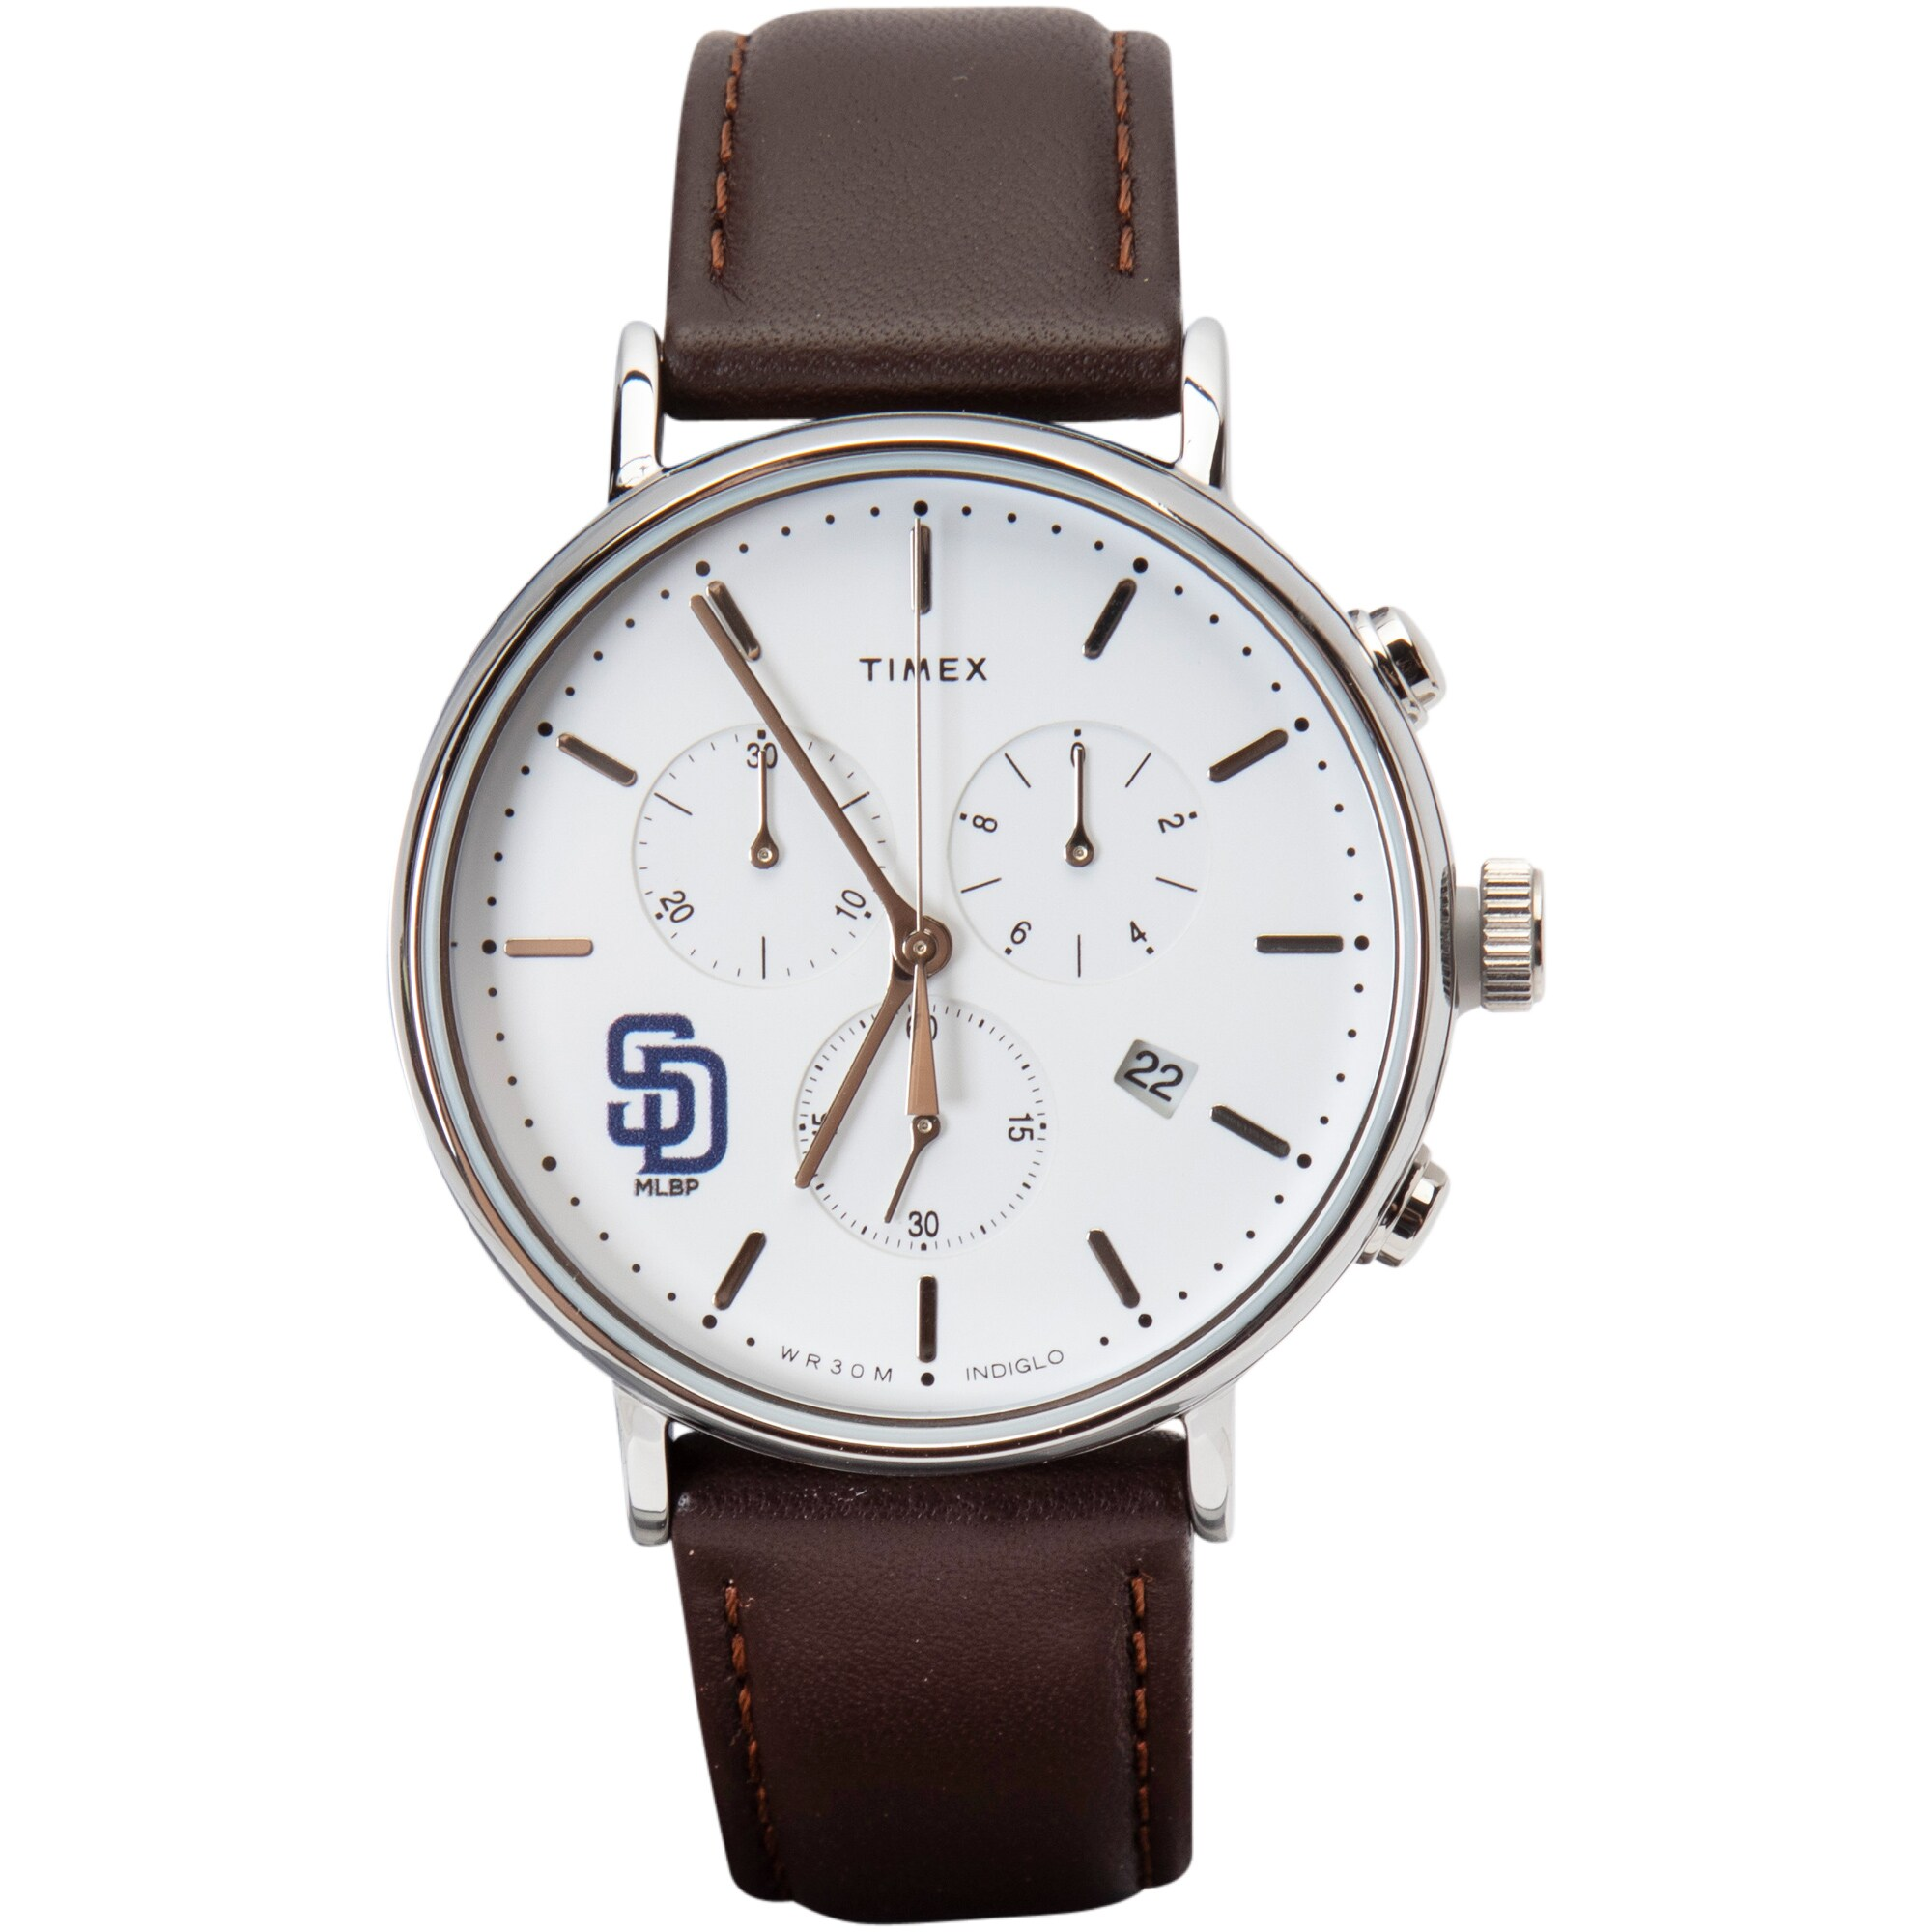 San Diego Padres Timex General Manager Watch